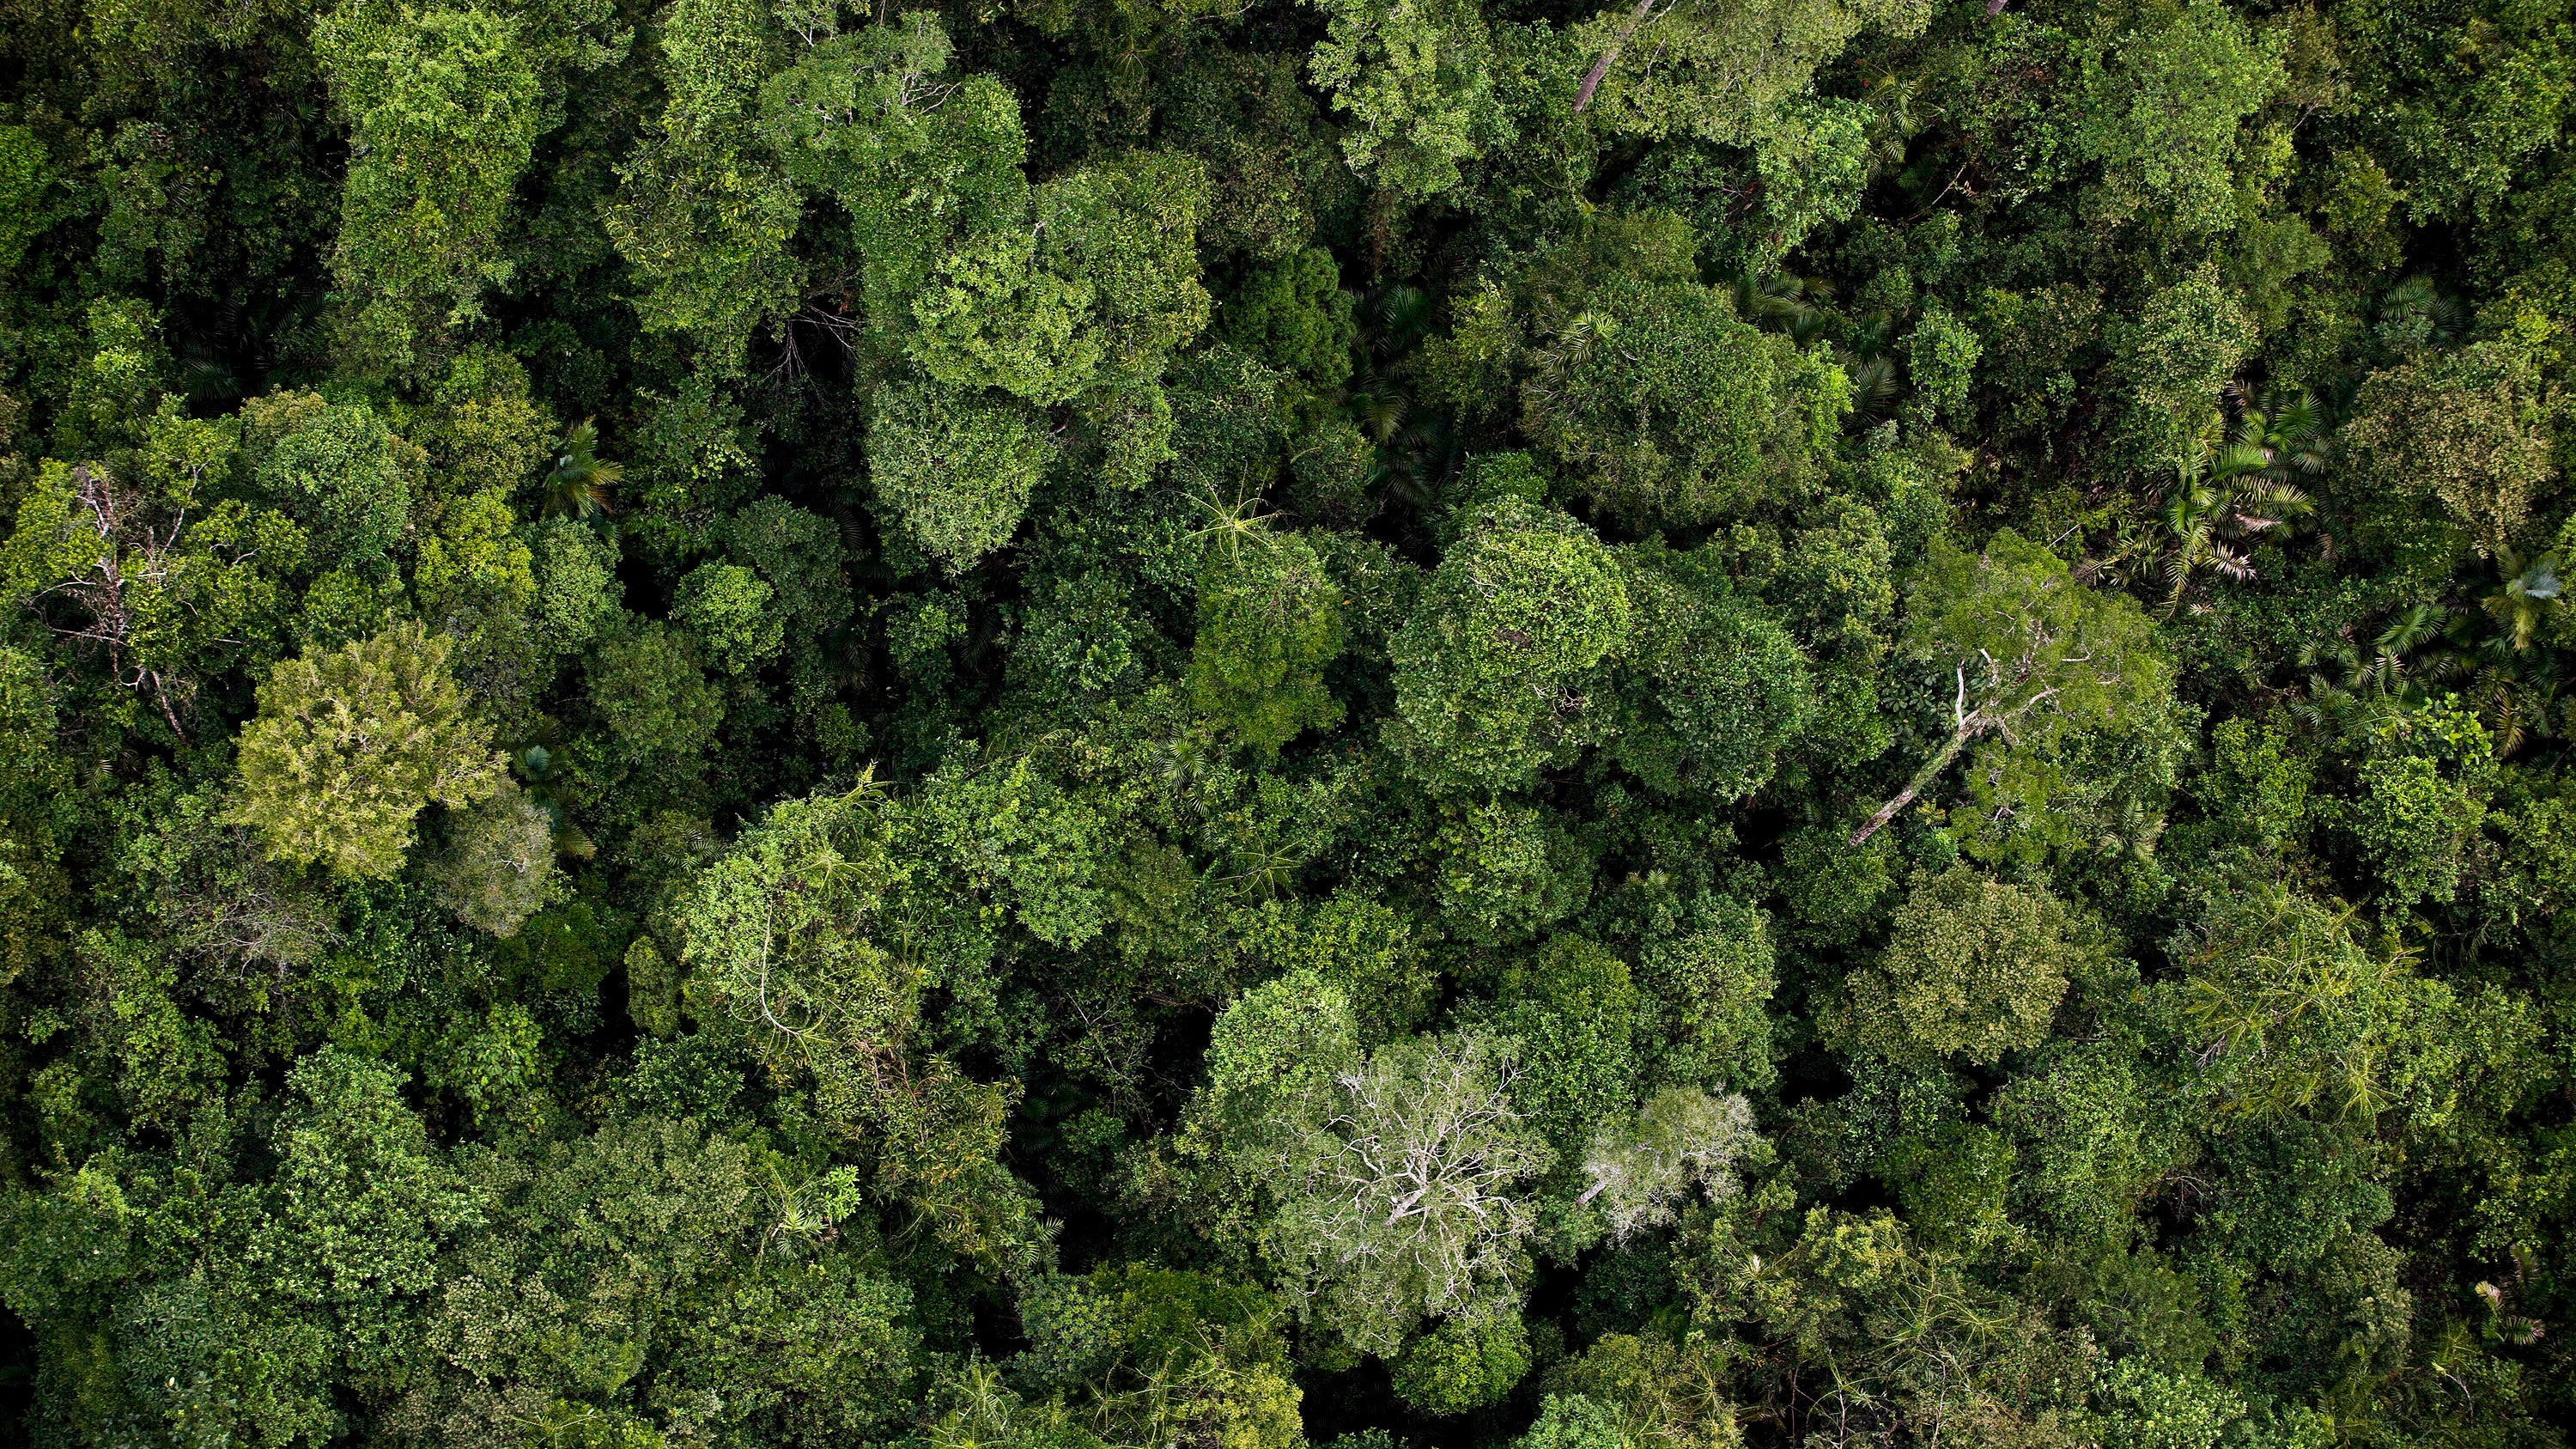 Calculation Shows We Could Add A US-Sized Forest To The Planet To Fight Climate Change